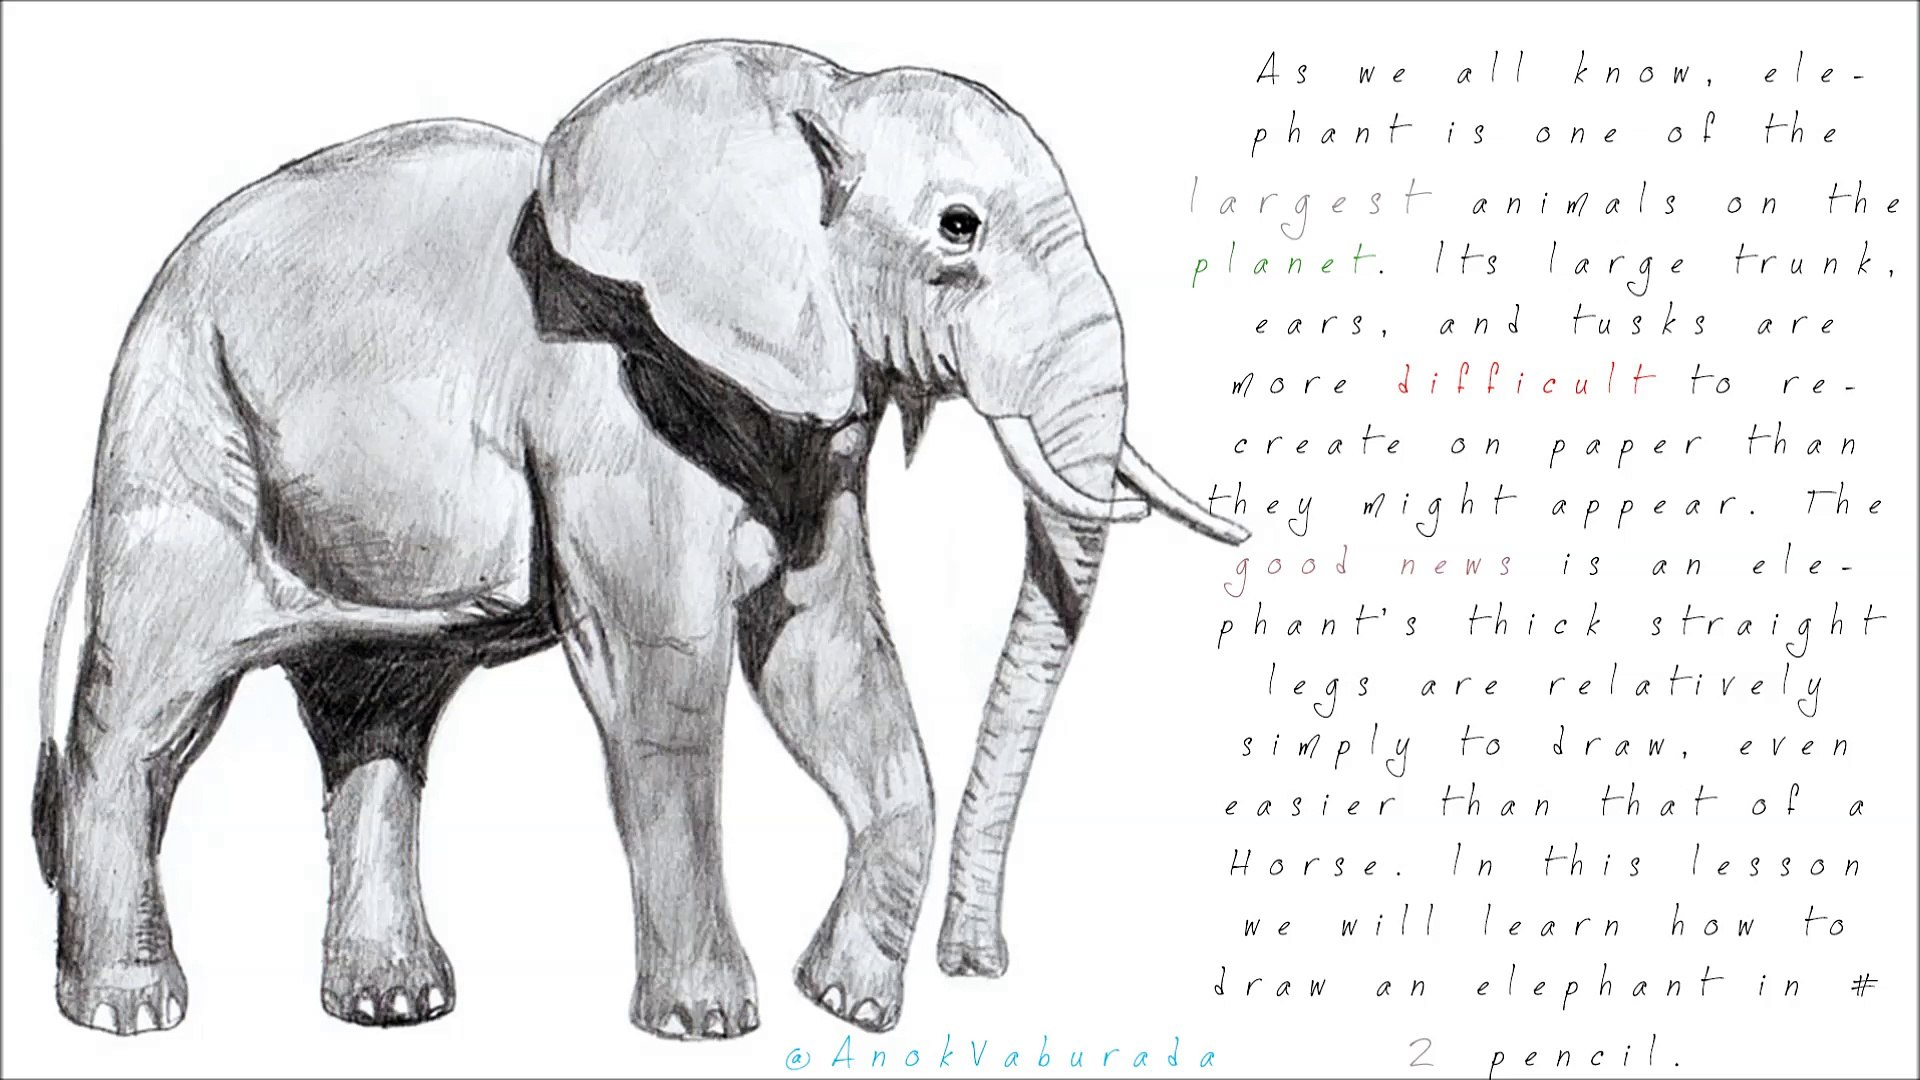 How To Draw An Elephant Tutorial Difficult Normal Dailymotion Video